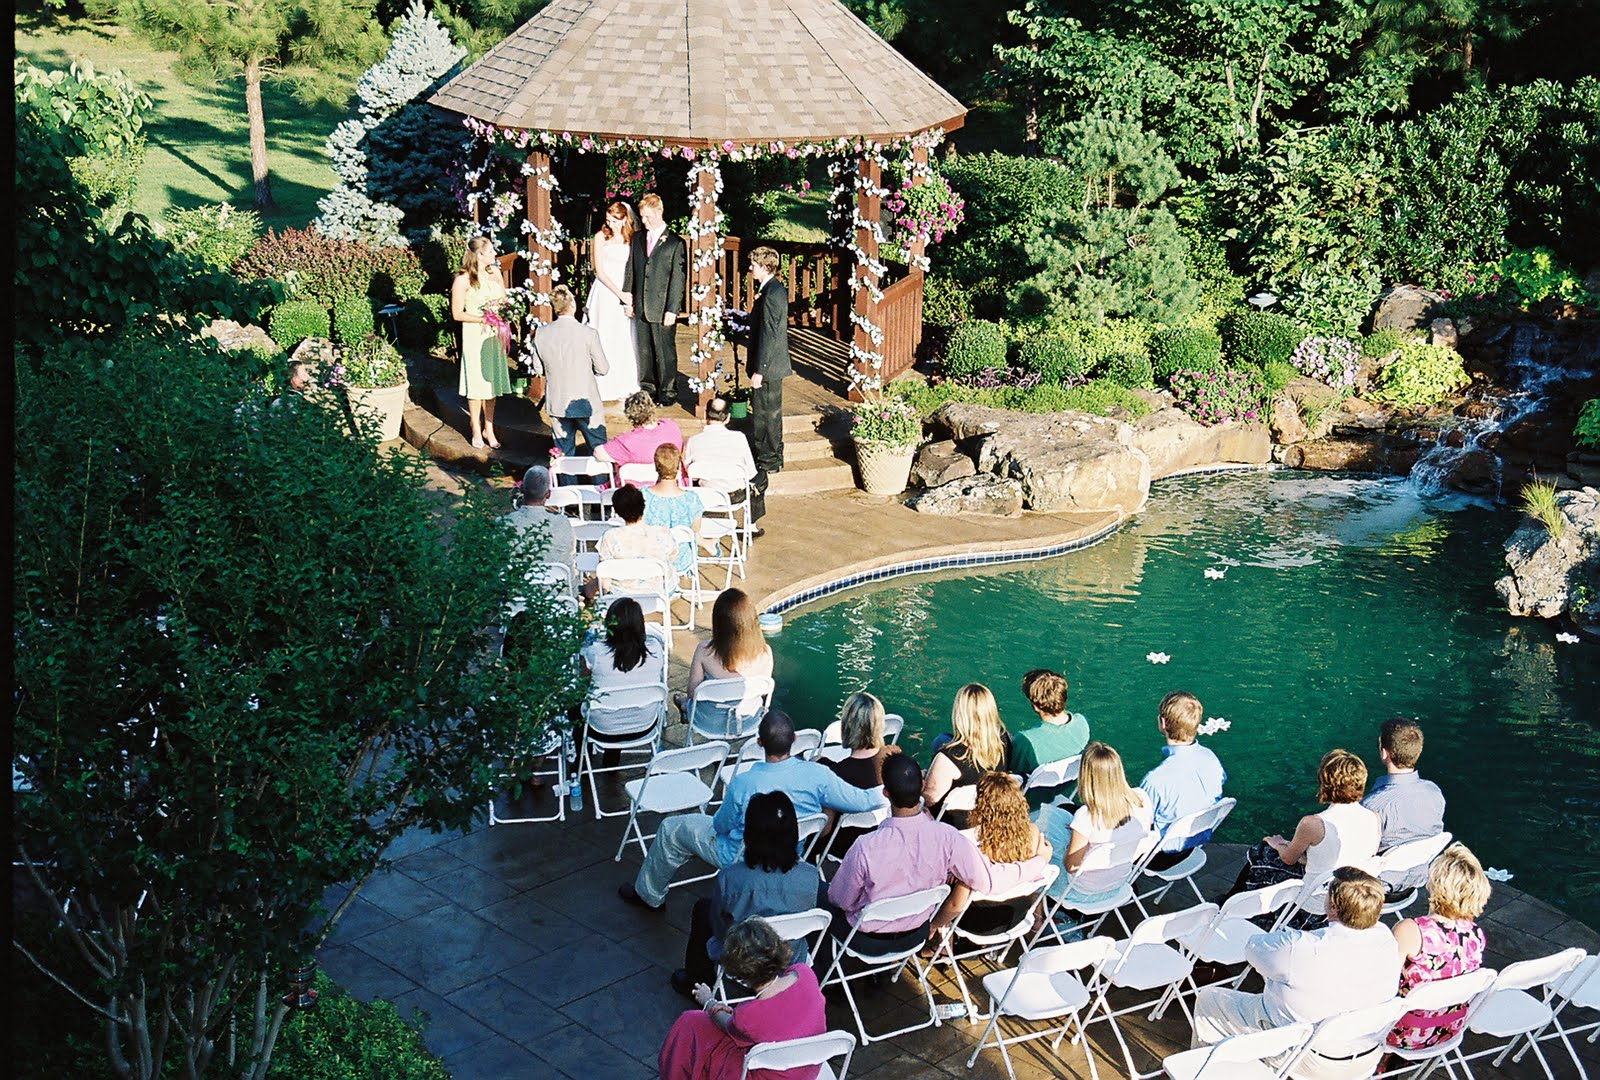 triyae com u003d backyard wedding ideas with pool various design